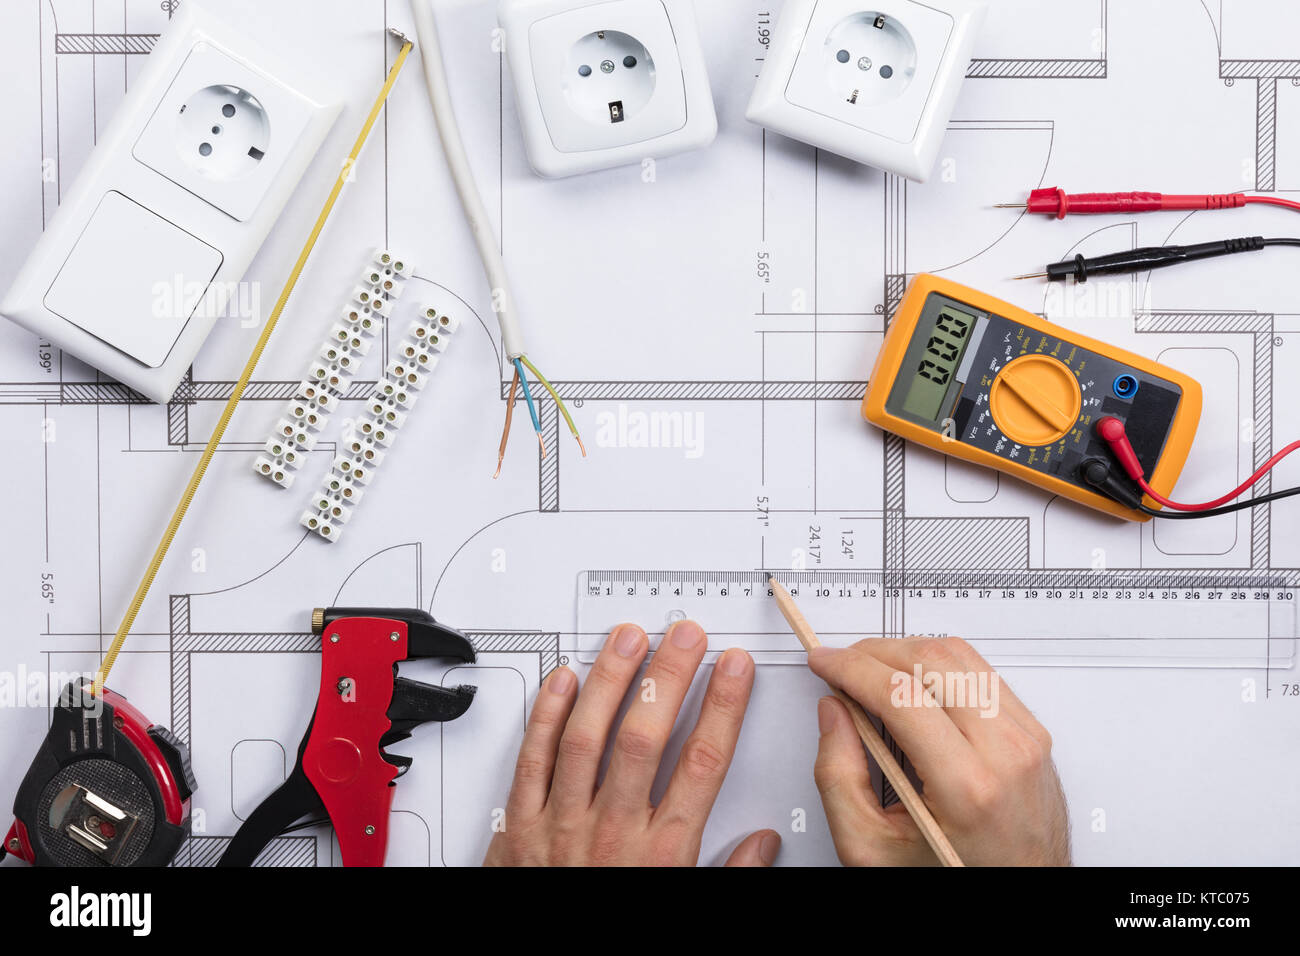 Drawing Elevation Stockfotos & Drawing Elevation Bilder - Alamy